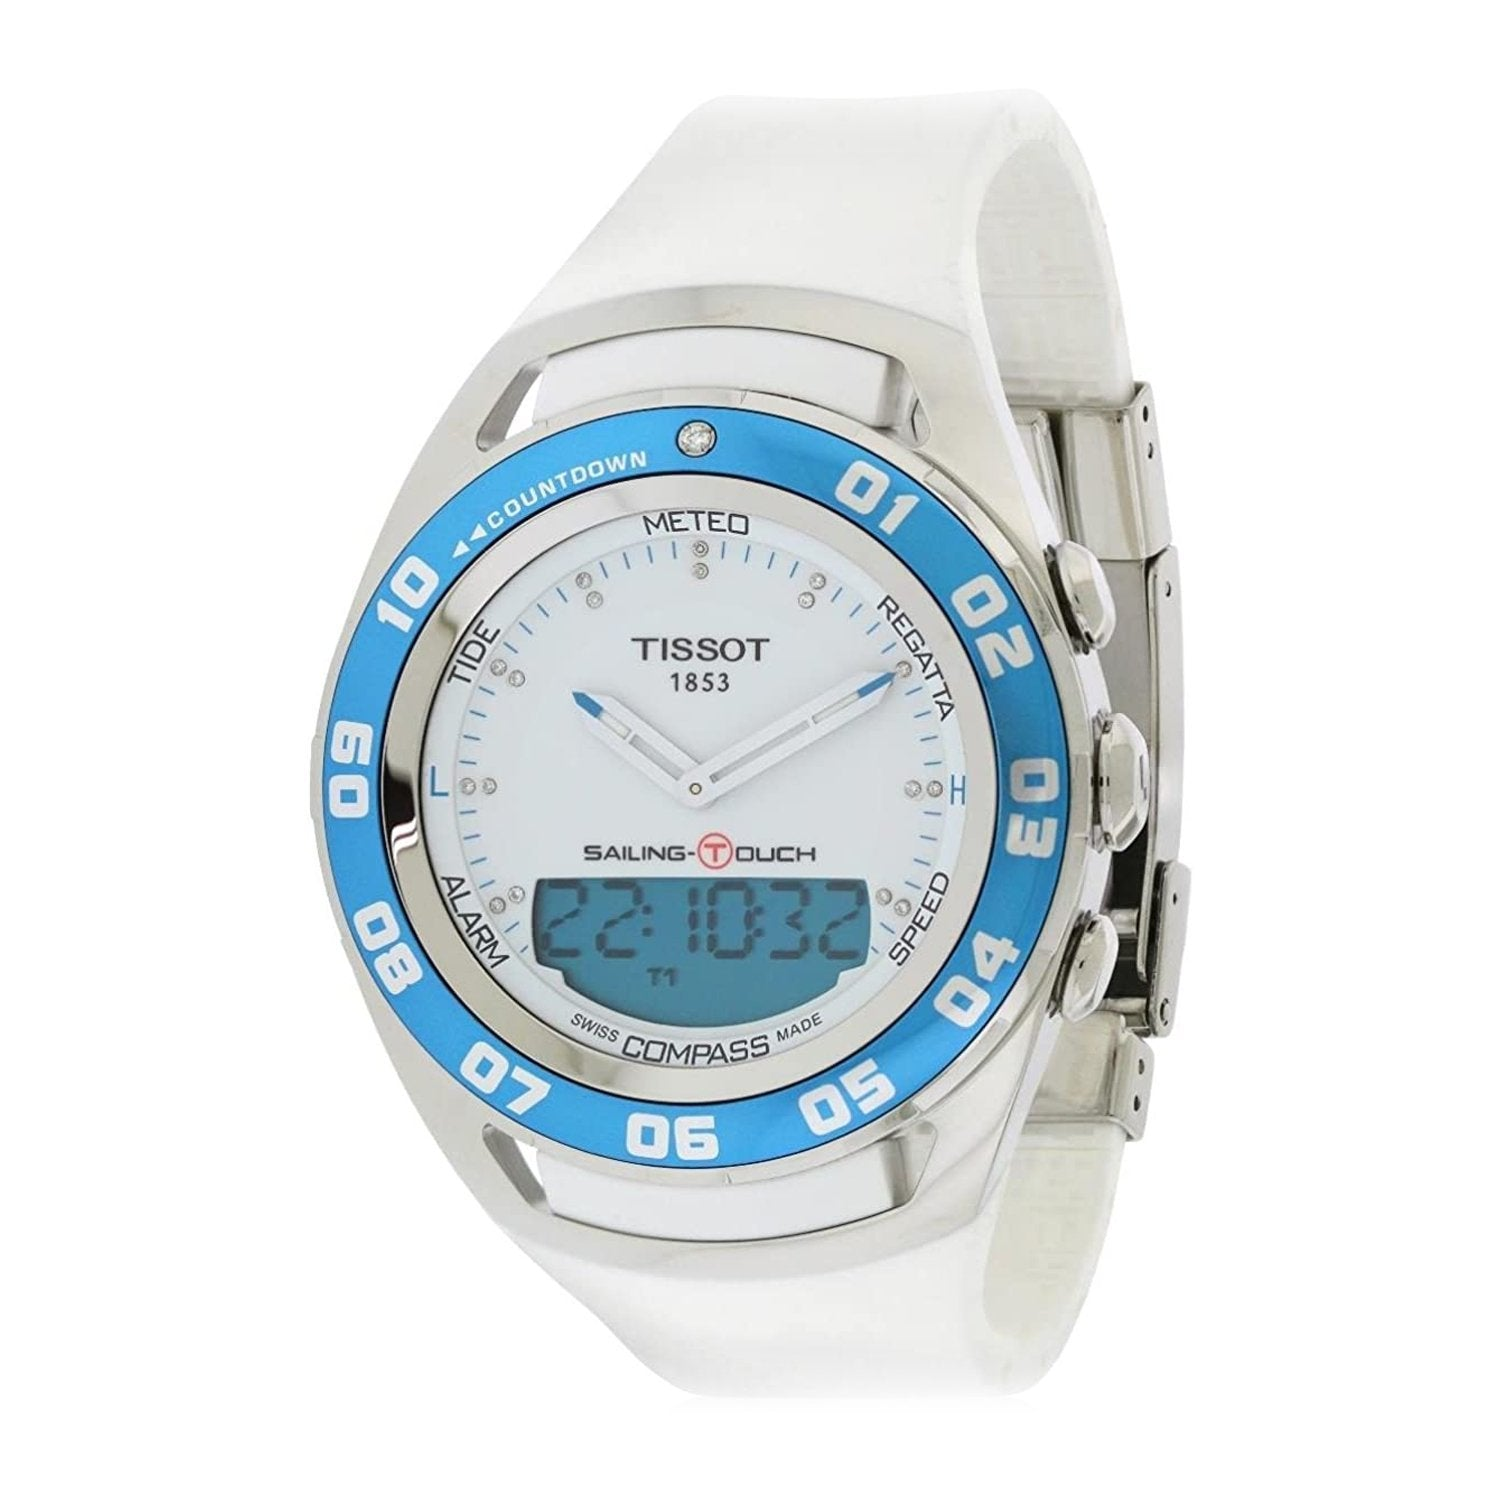 Tissot Sailing Touch Diamond White - Watches & Crystals